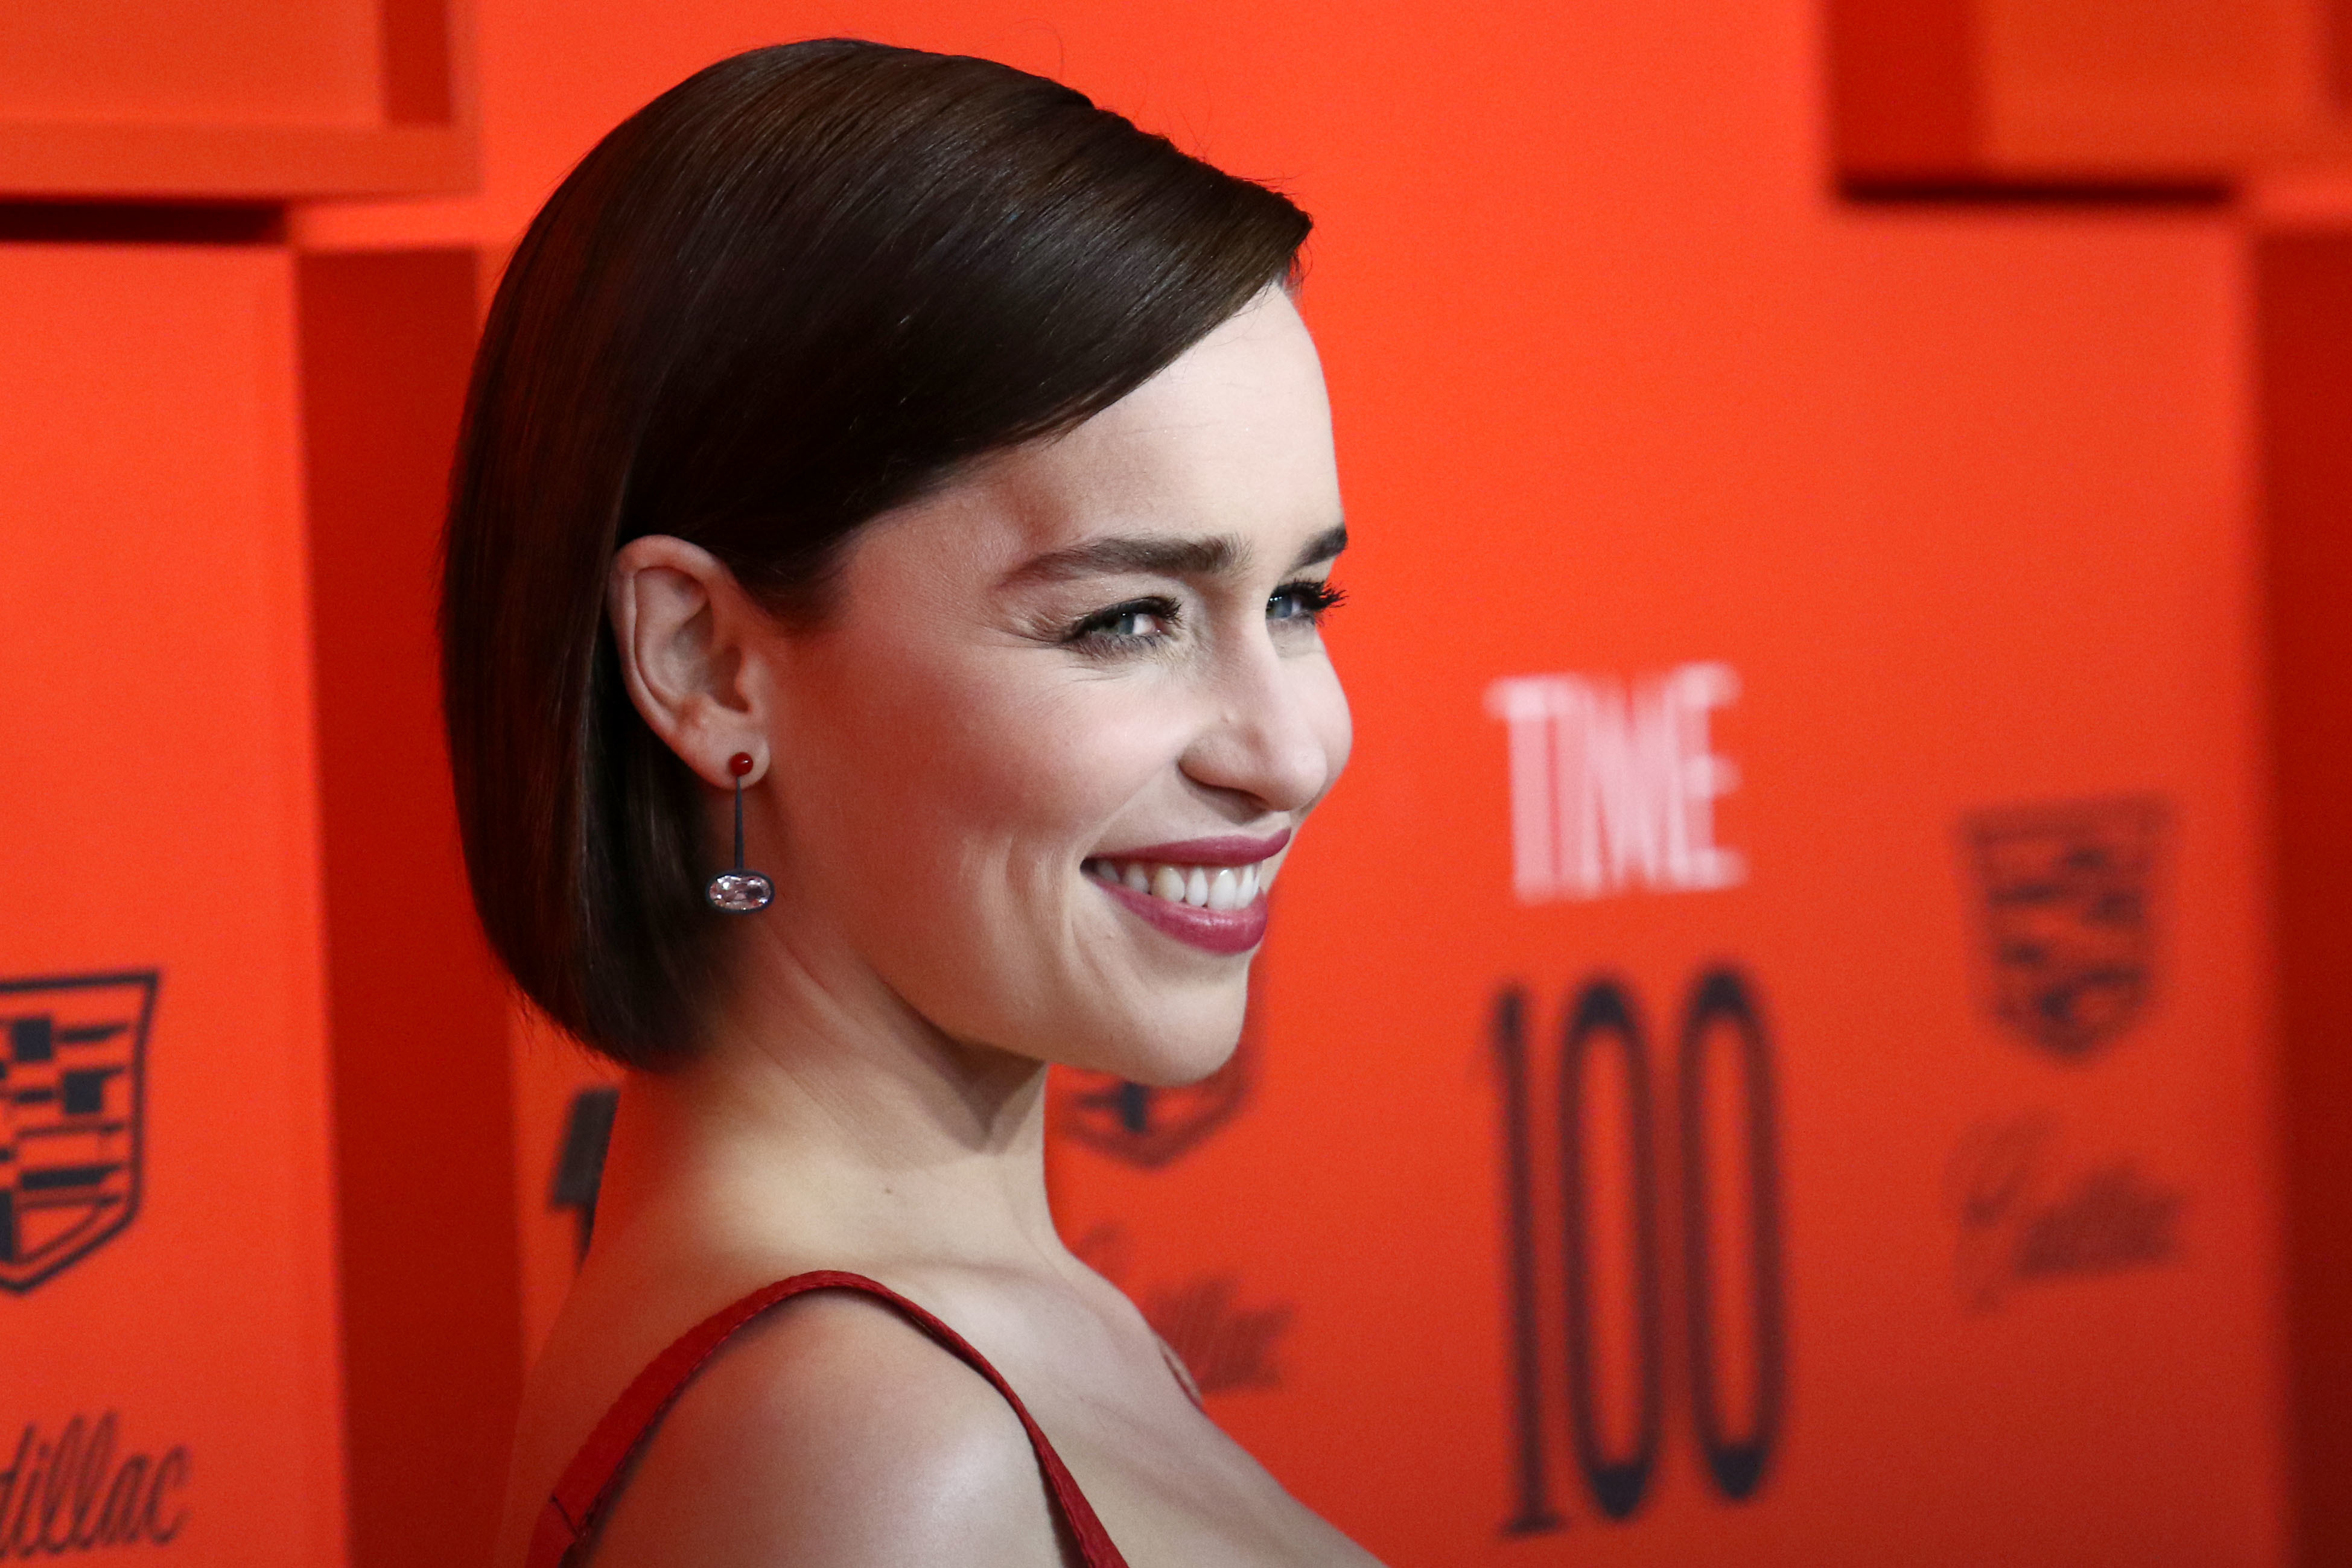 Emilia Clarke said the end of the show left her feeling numb. Credit: PA